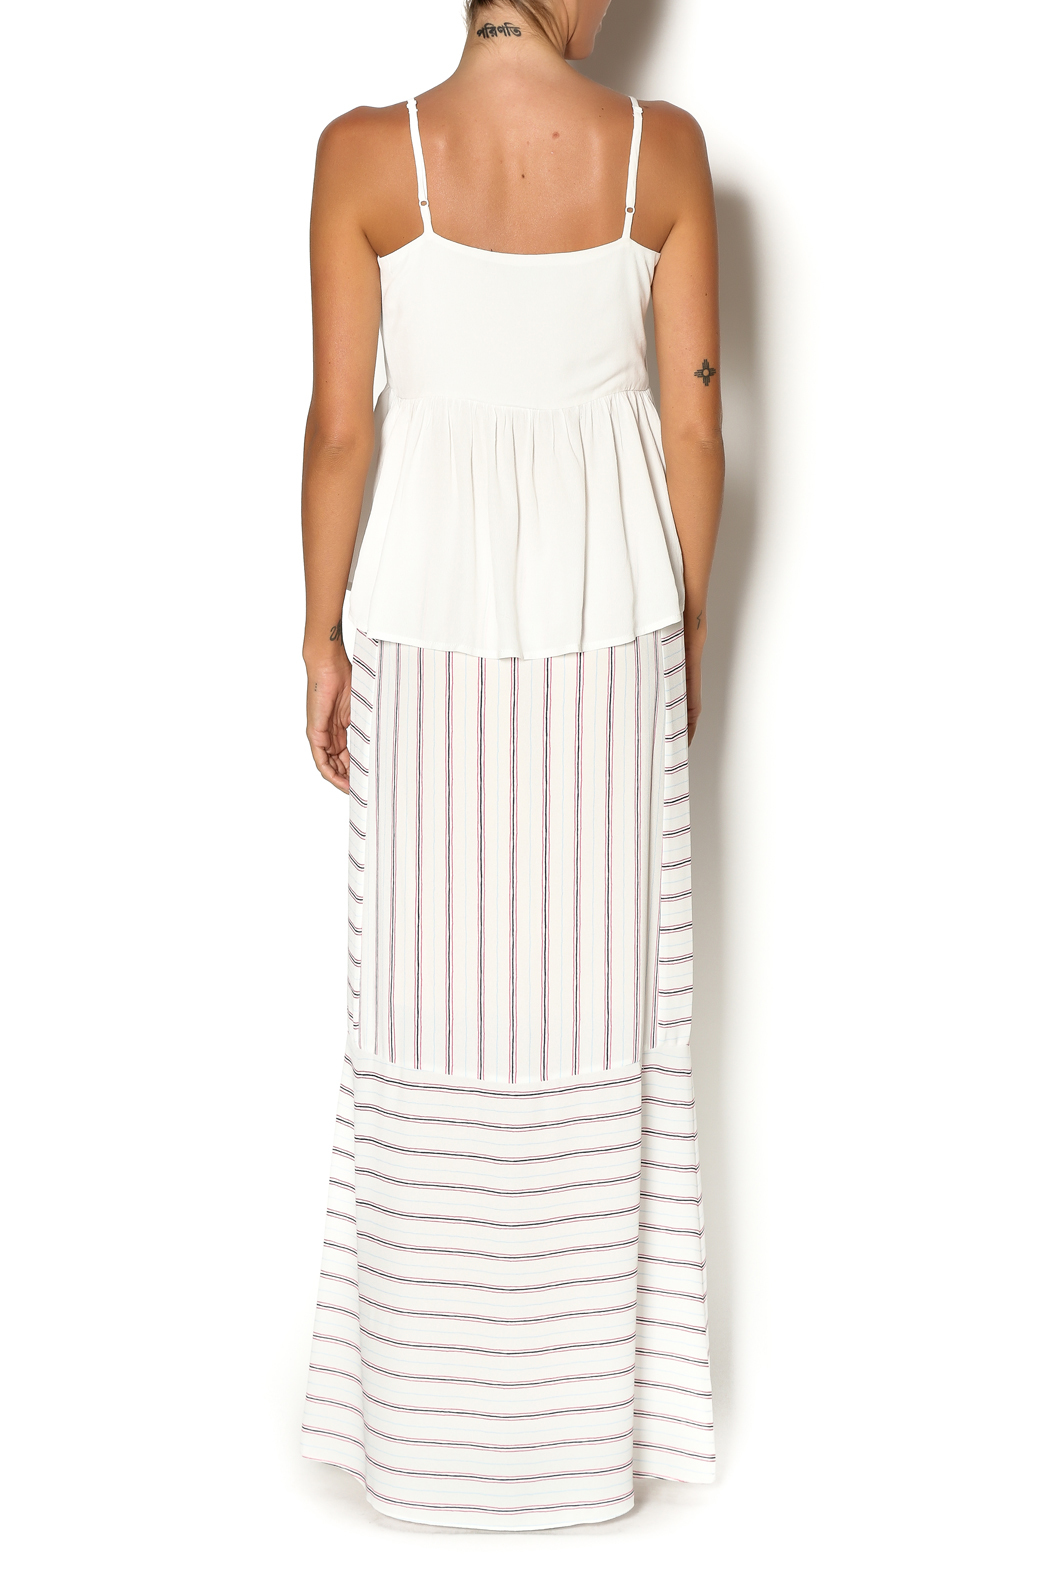 bcbg max azria white haleigh maxi from new york by leelee